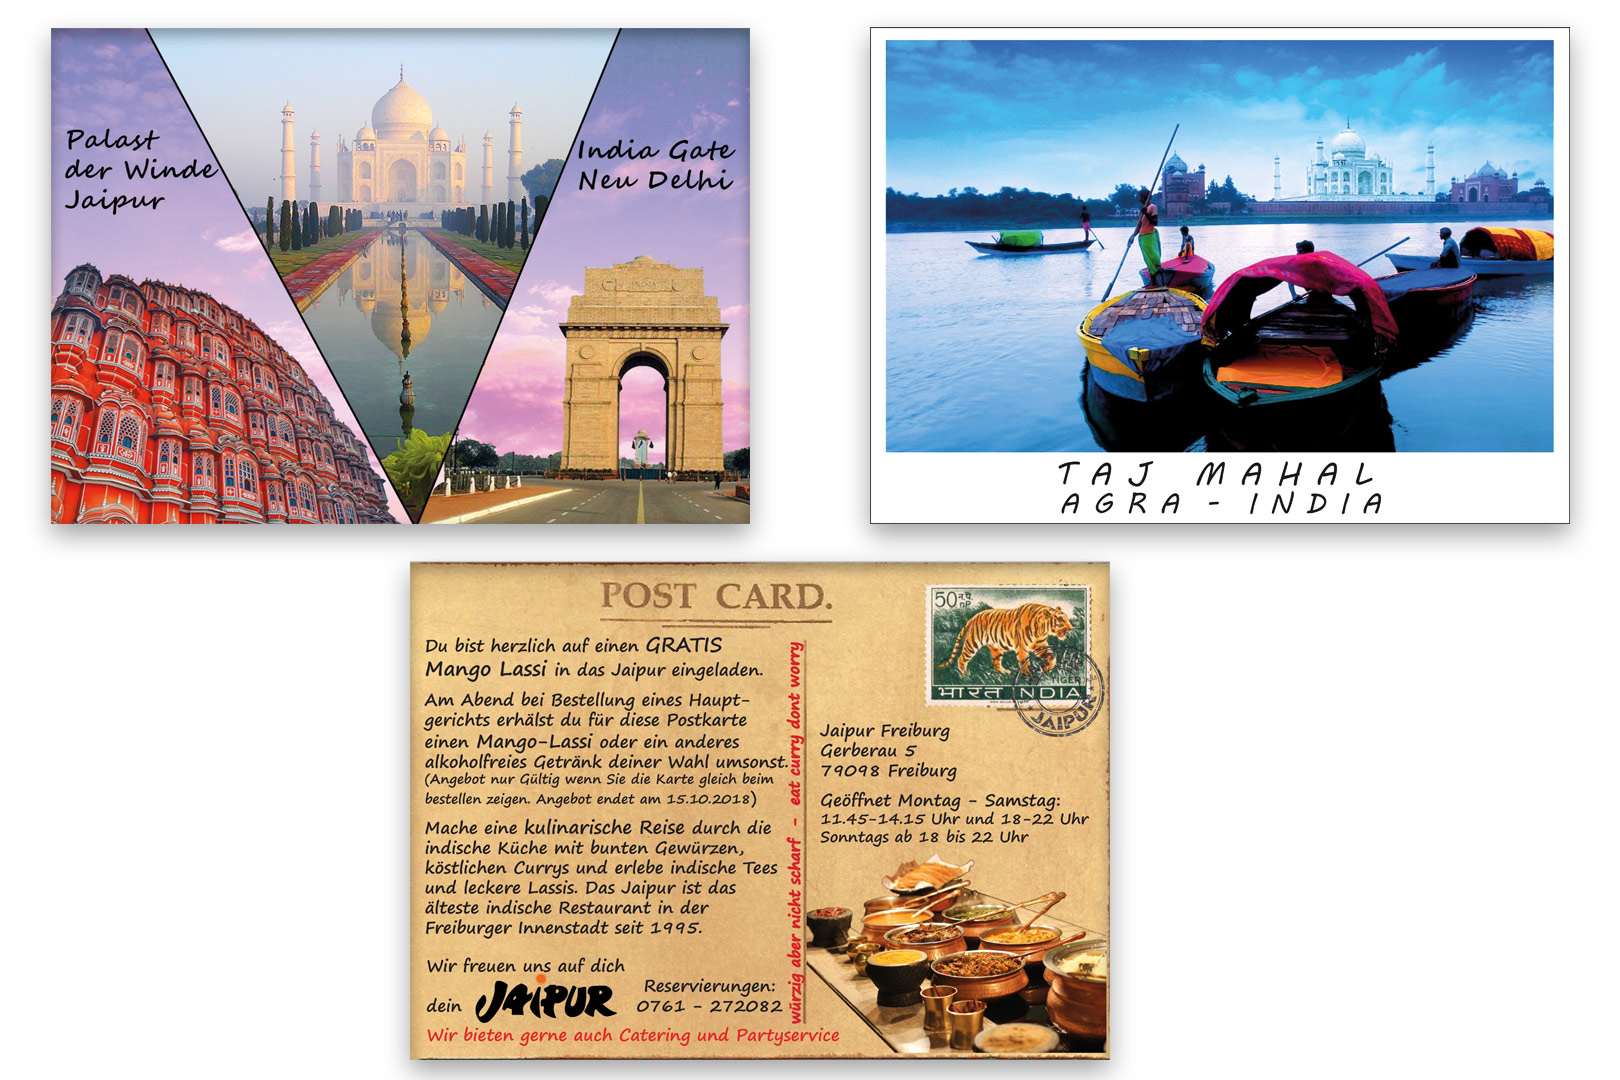 jaipur-postcard-preview-1.jpg